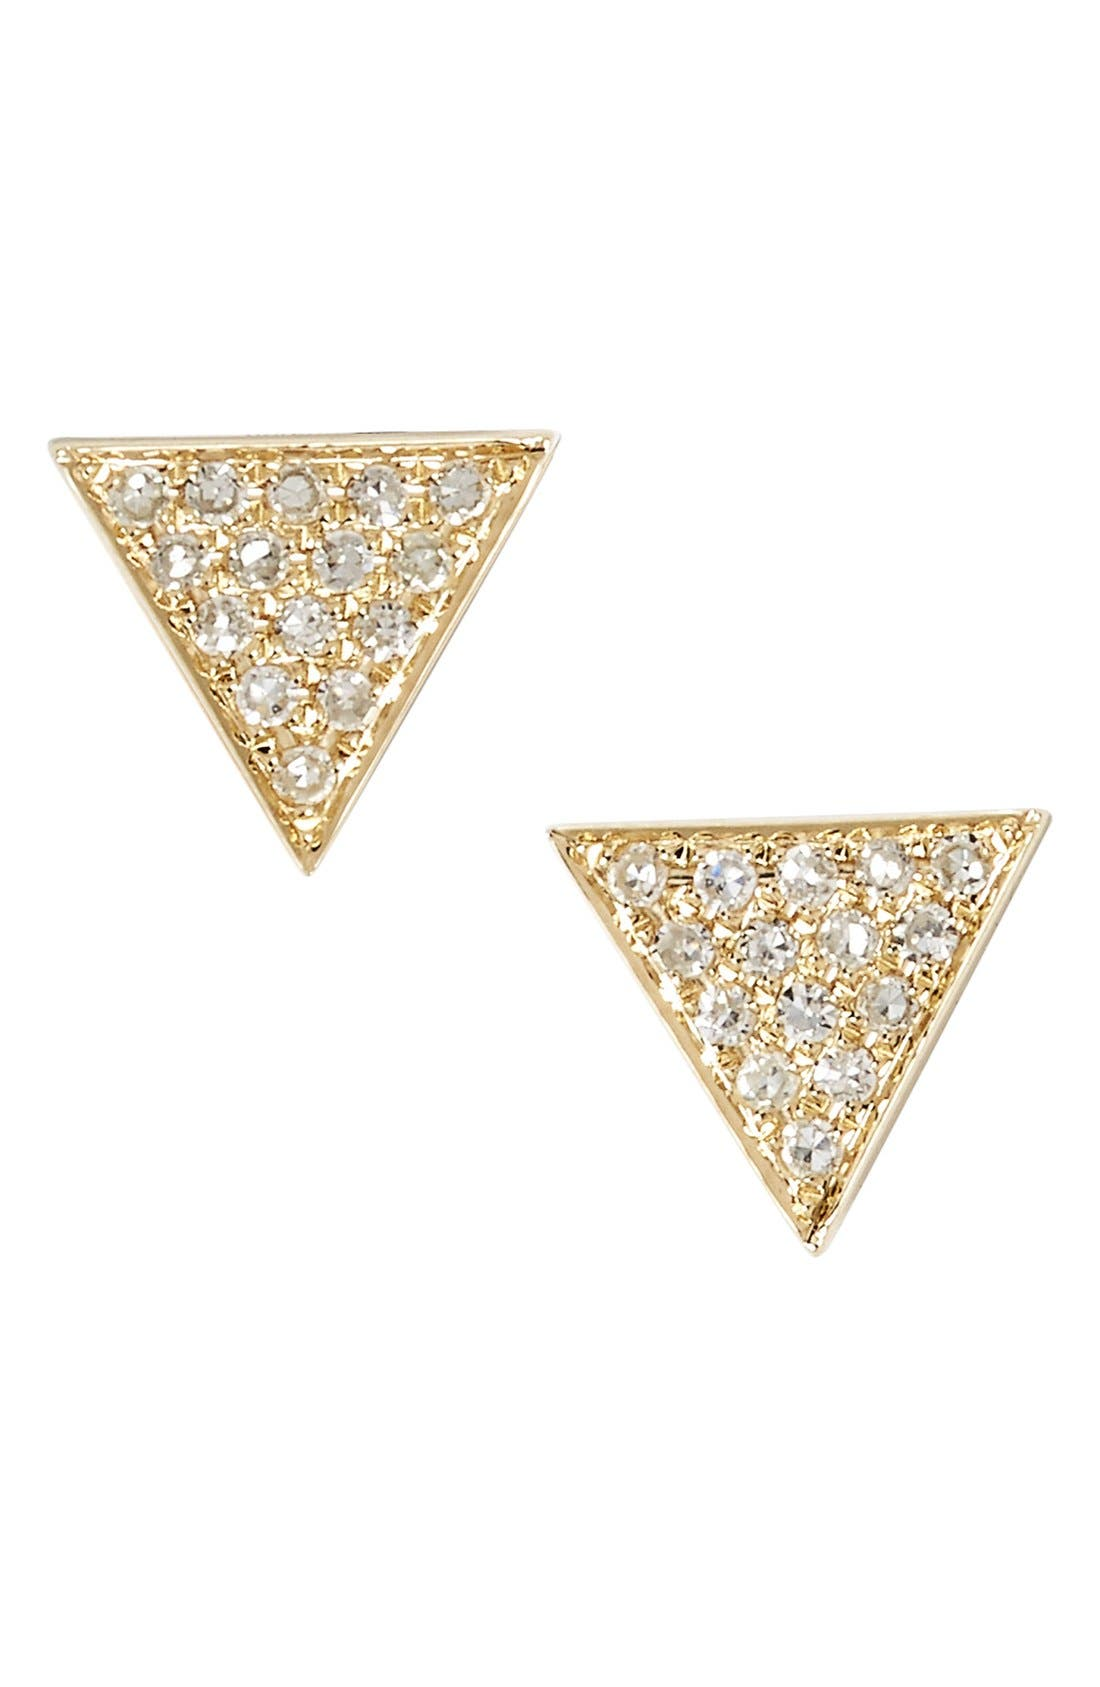 DANA REBECCA DESIGNS Emily Sarah Diamond Pavé Triangle Stud Earrings